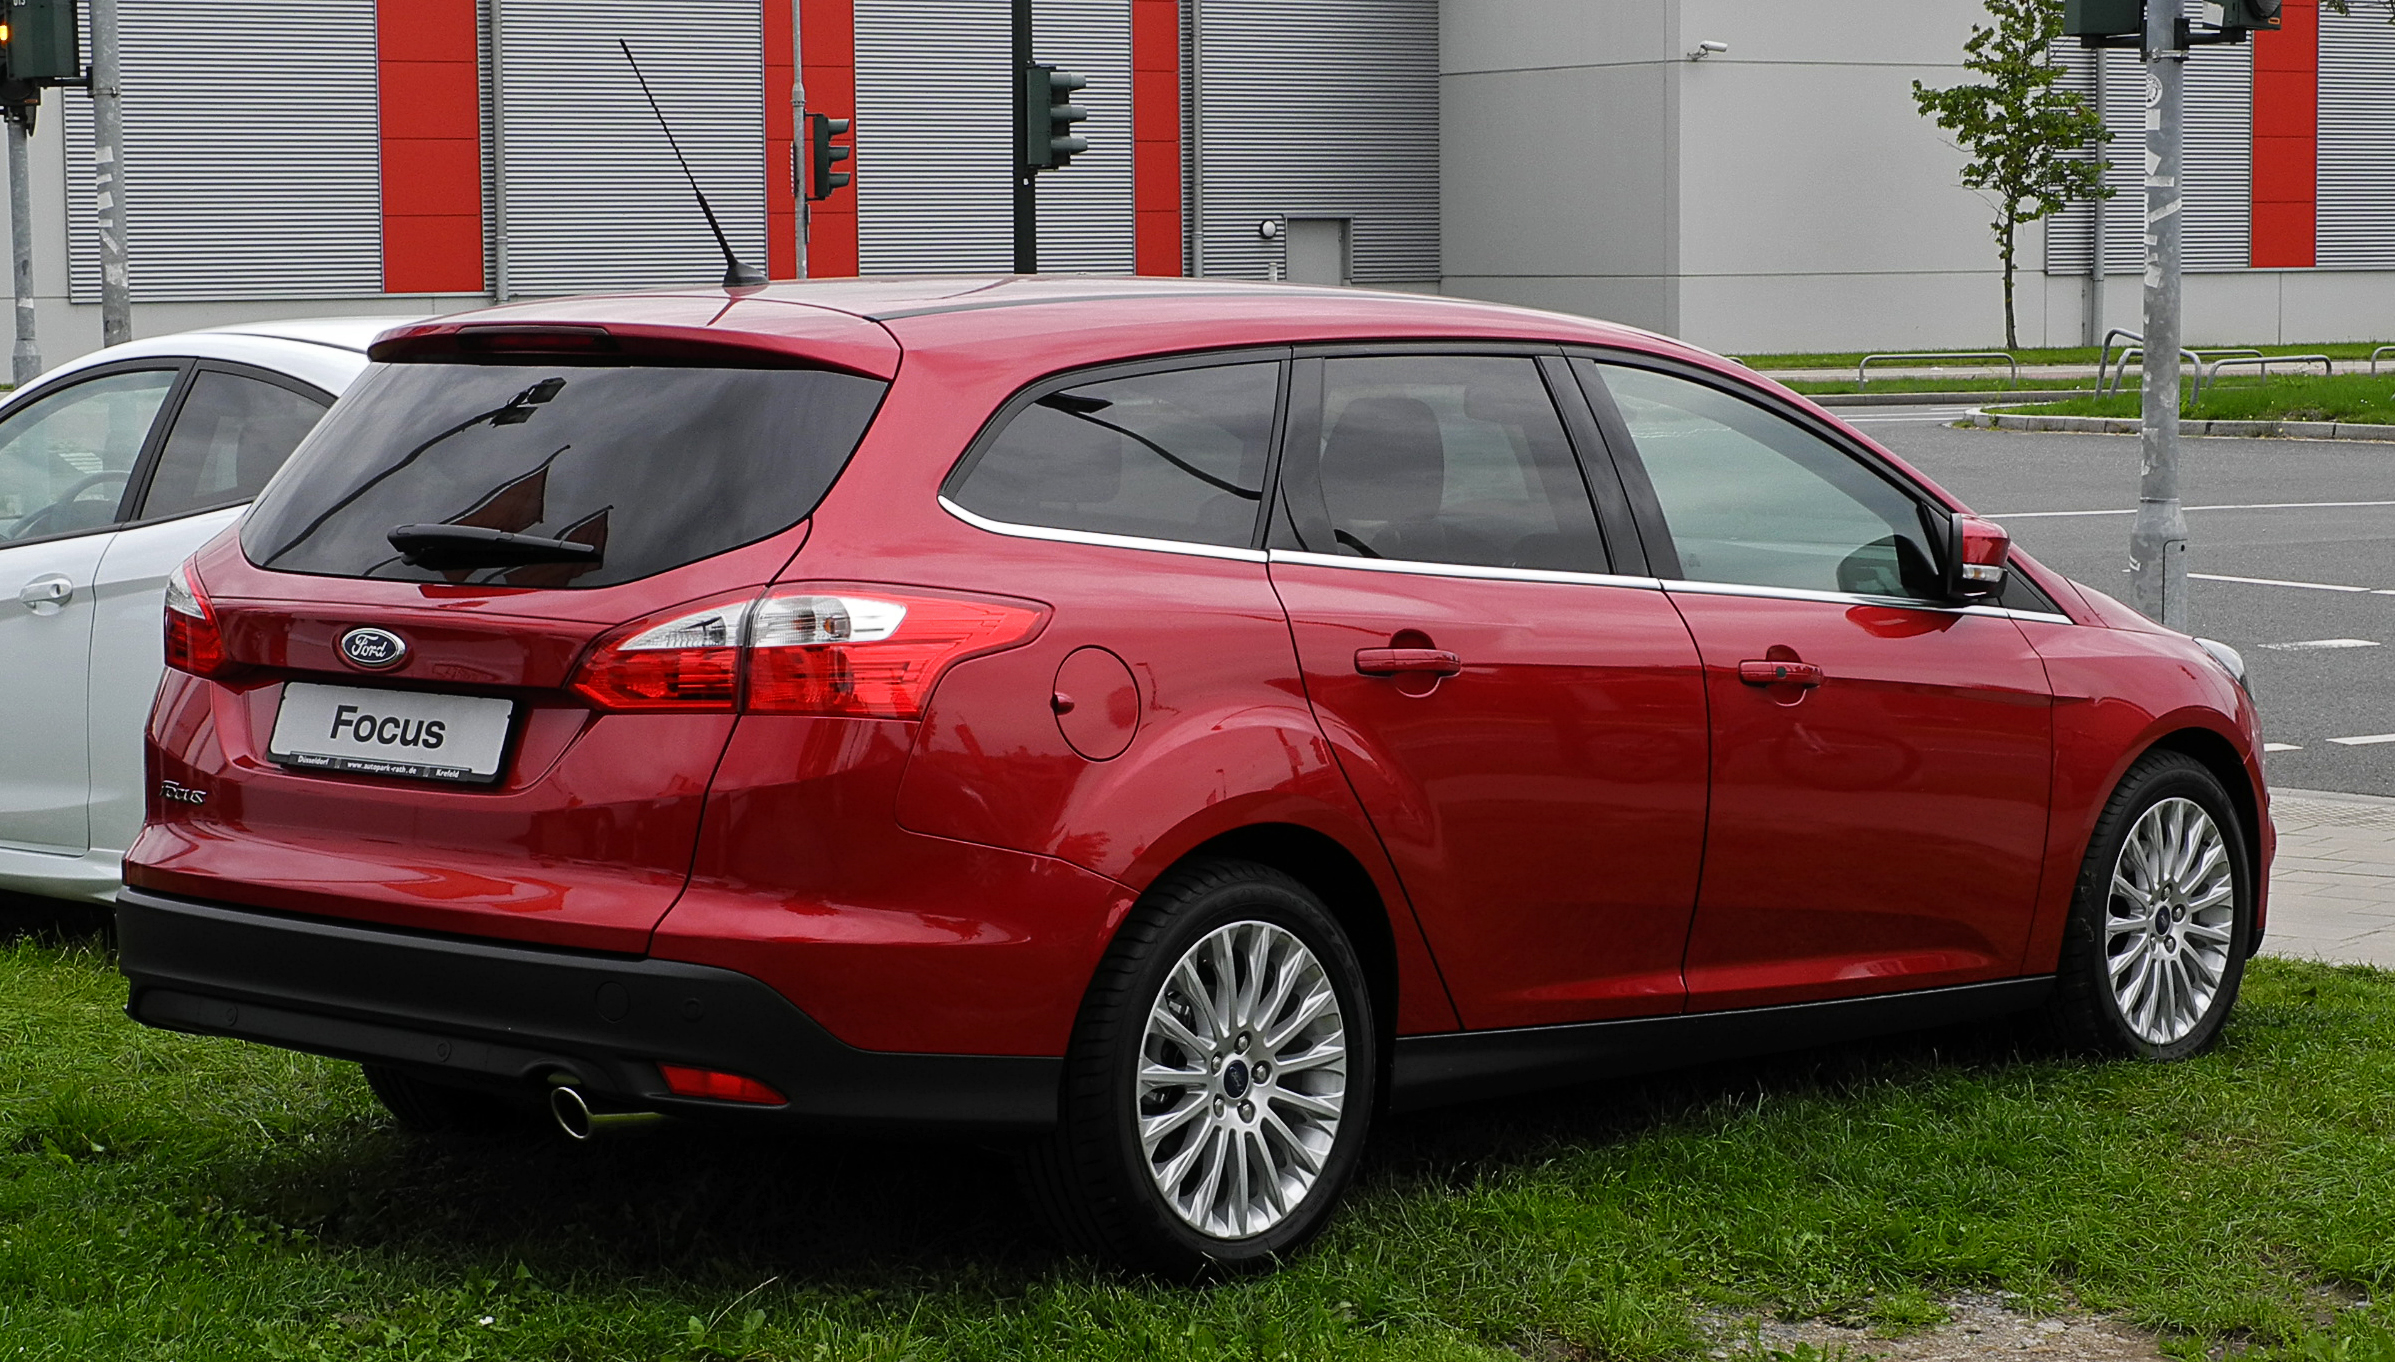 Ford focus turnier iii